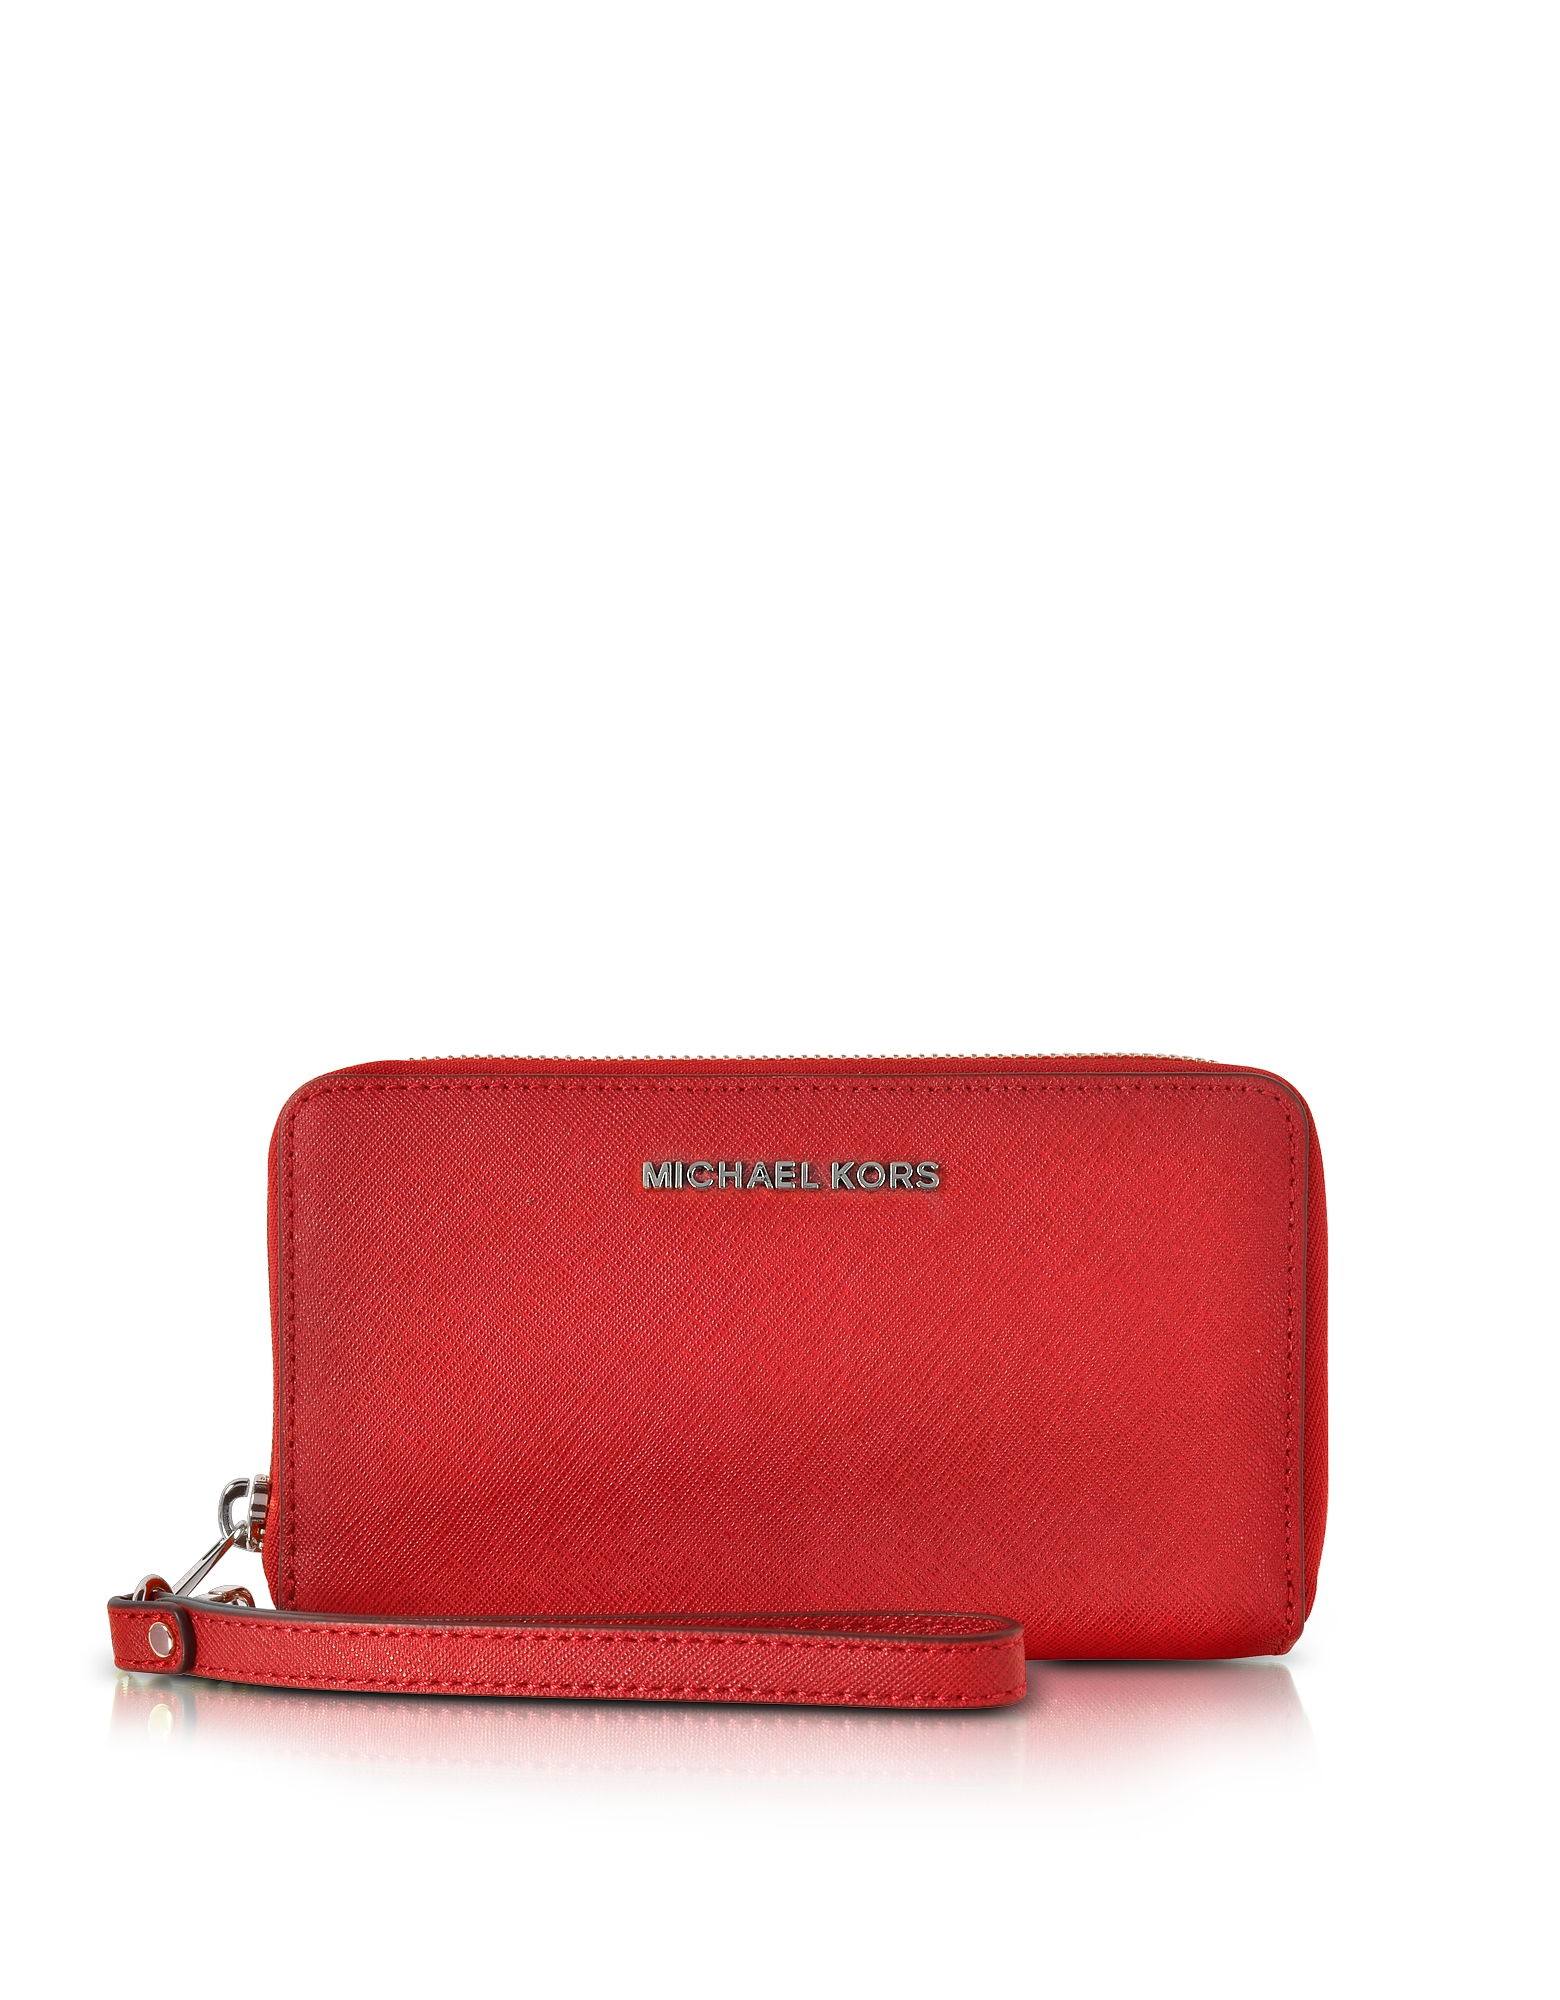 Michael Kors Handbags, Jet Set Travel Large Flat MF Bright Red Saffiano Leather Phone Case/Wallet